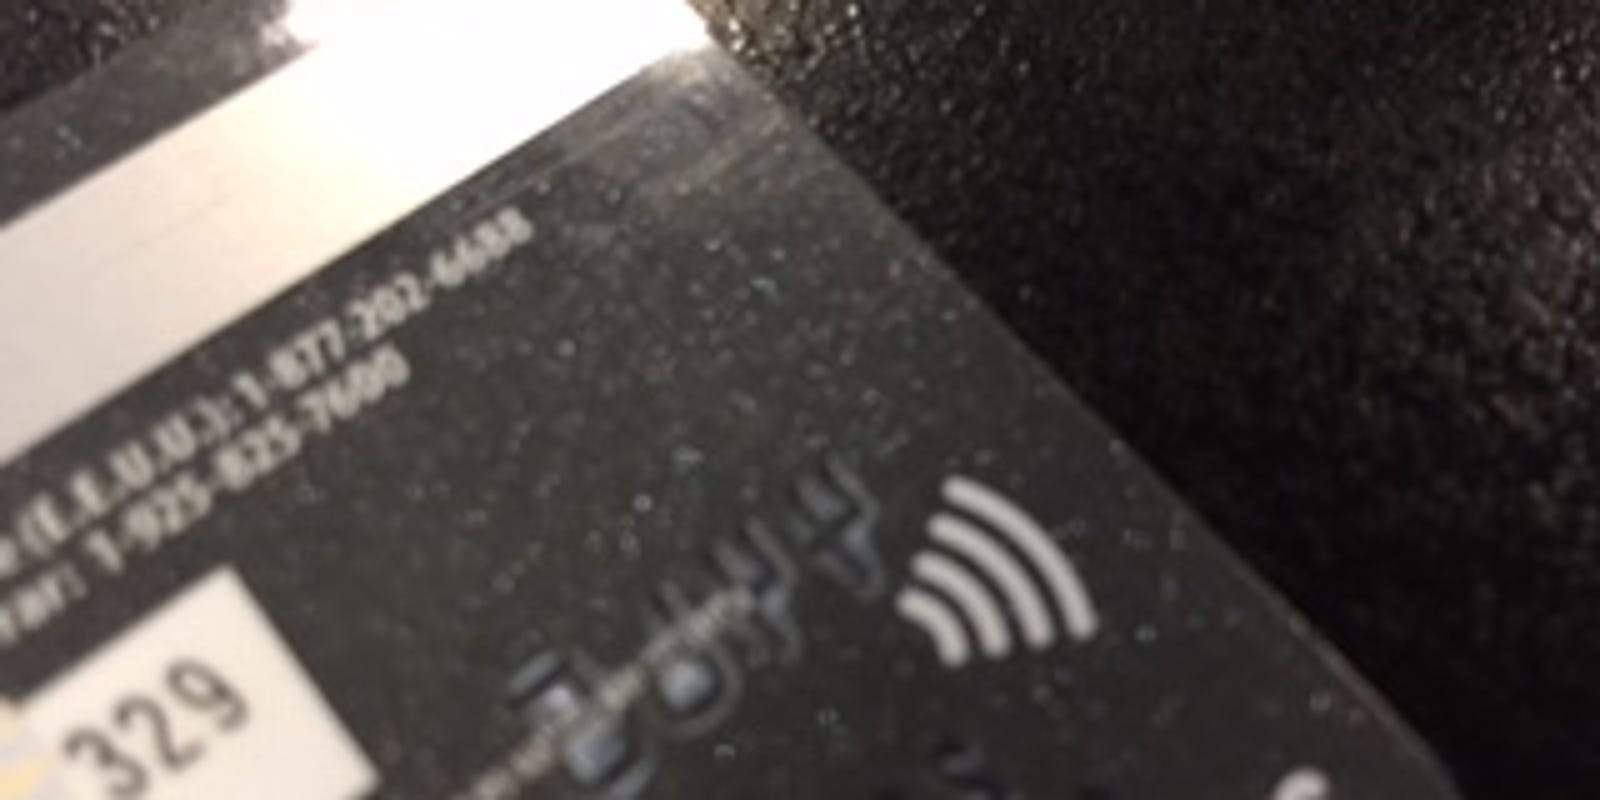 Do You Have A WiFi-Looking Symbol On Your Credit Card?